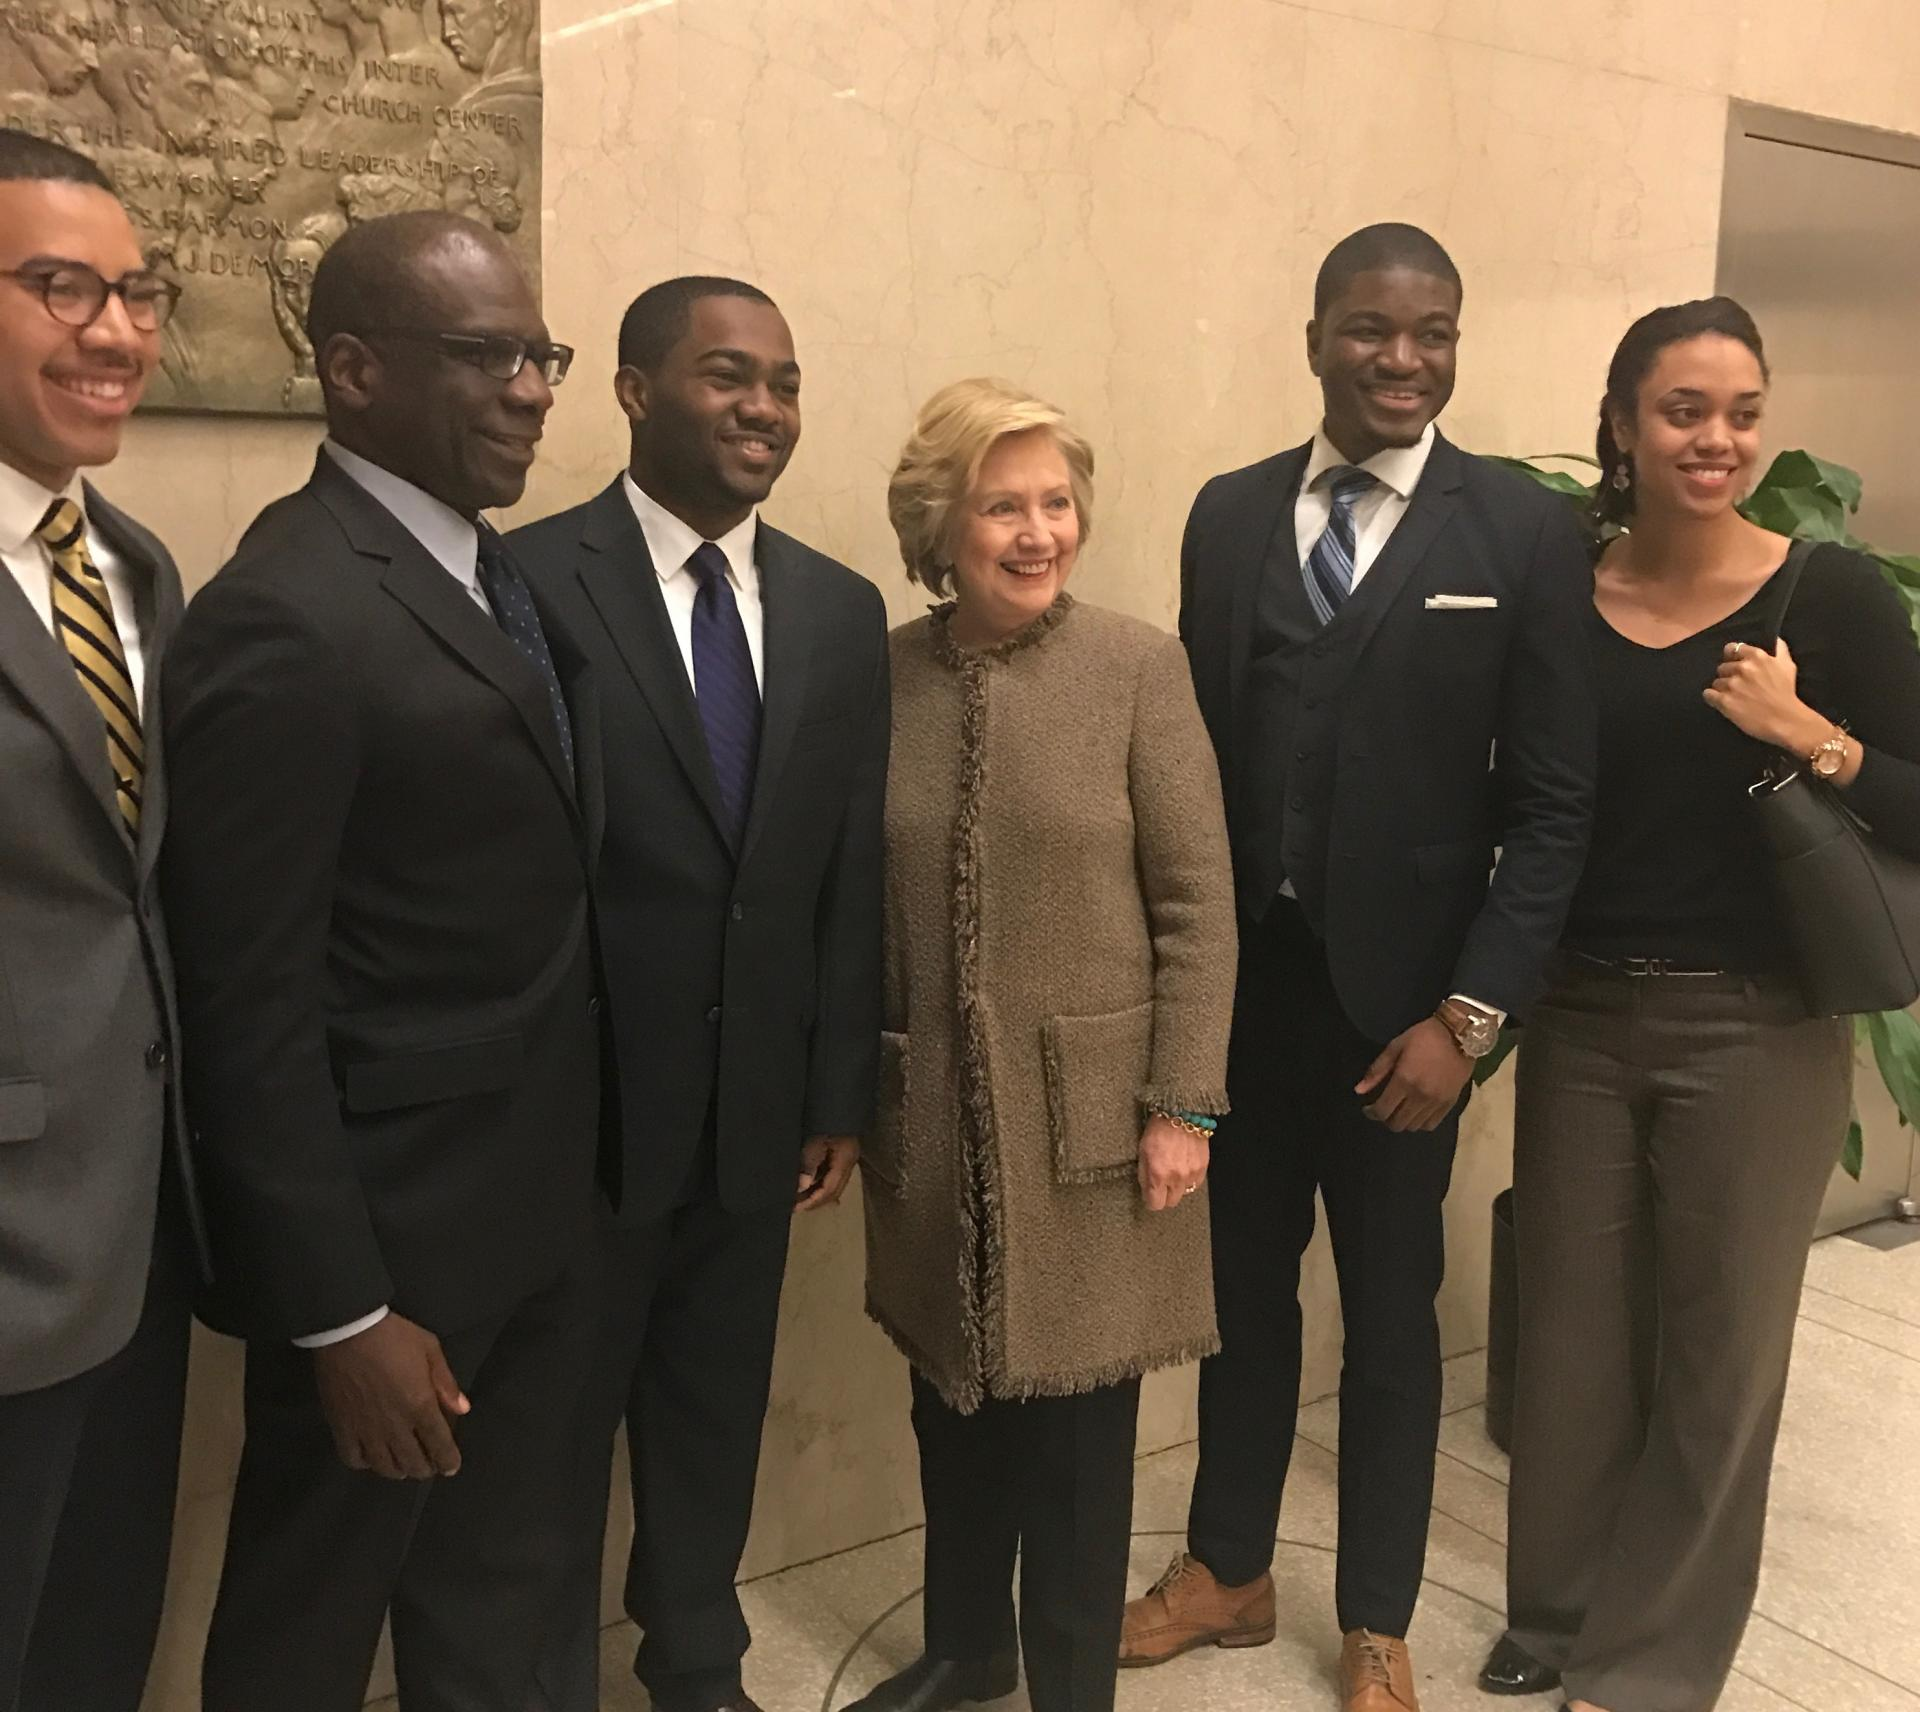 Students with Hillary Clinton